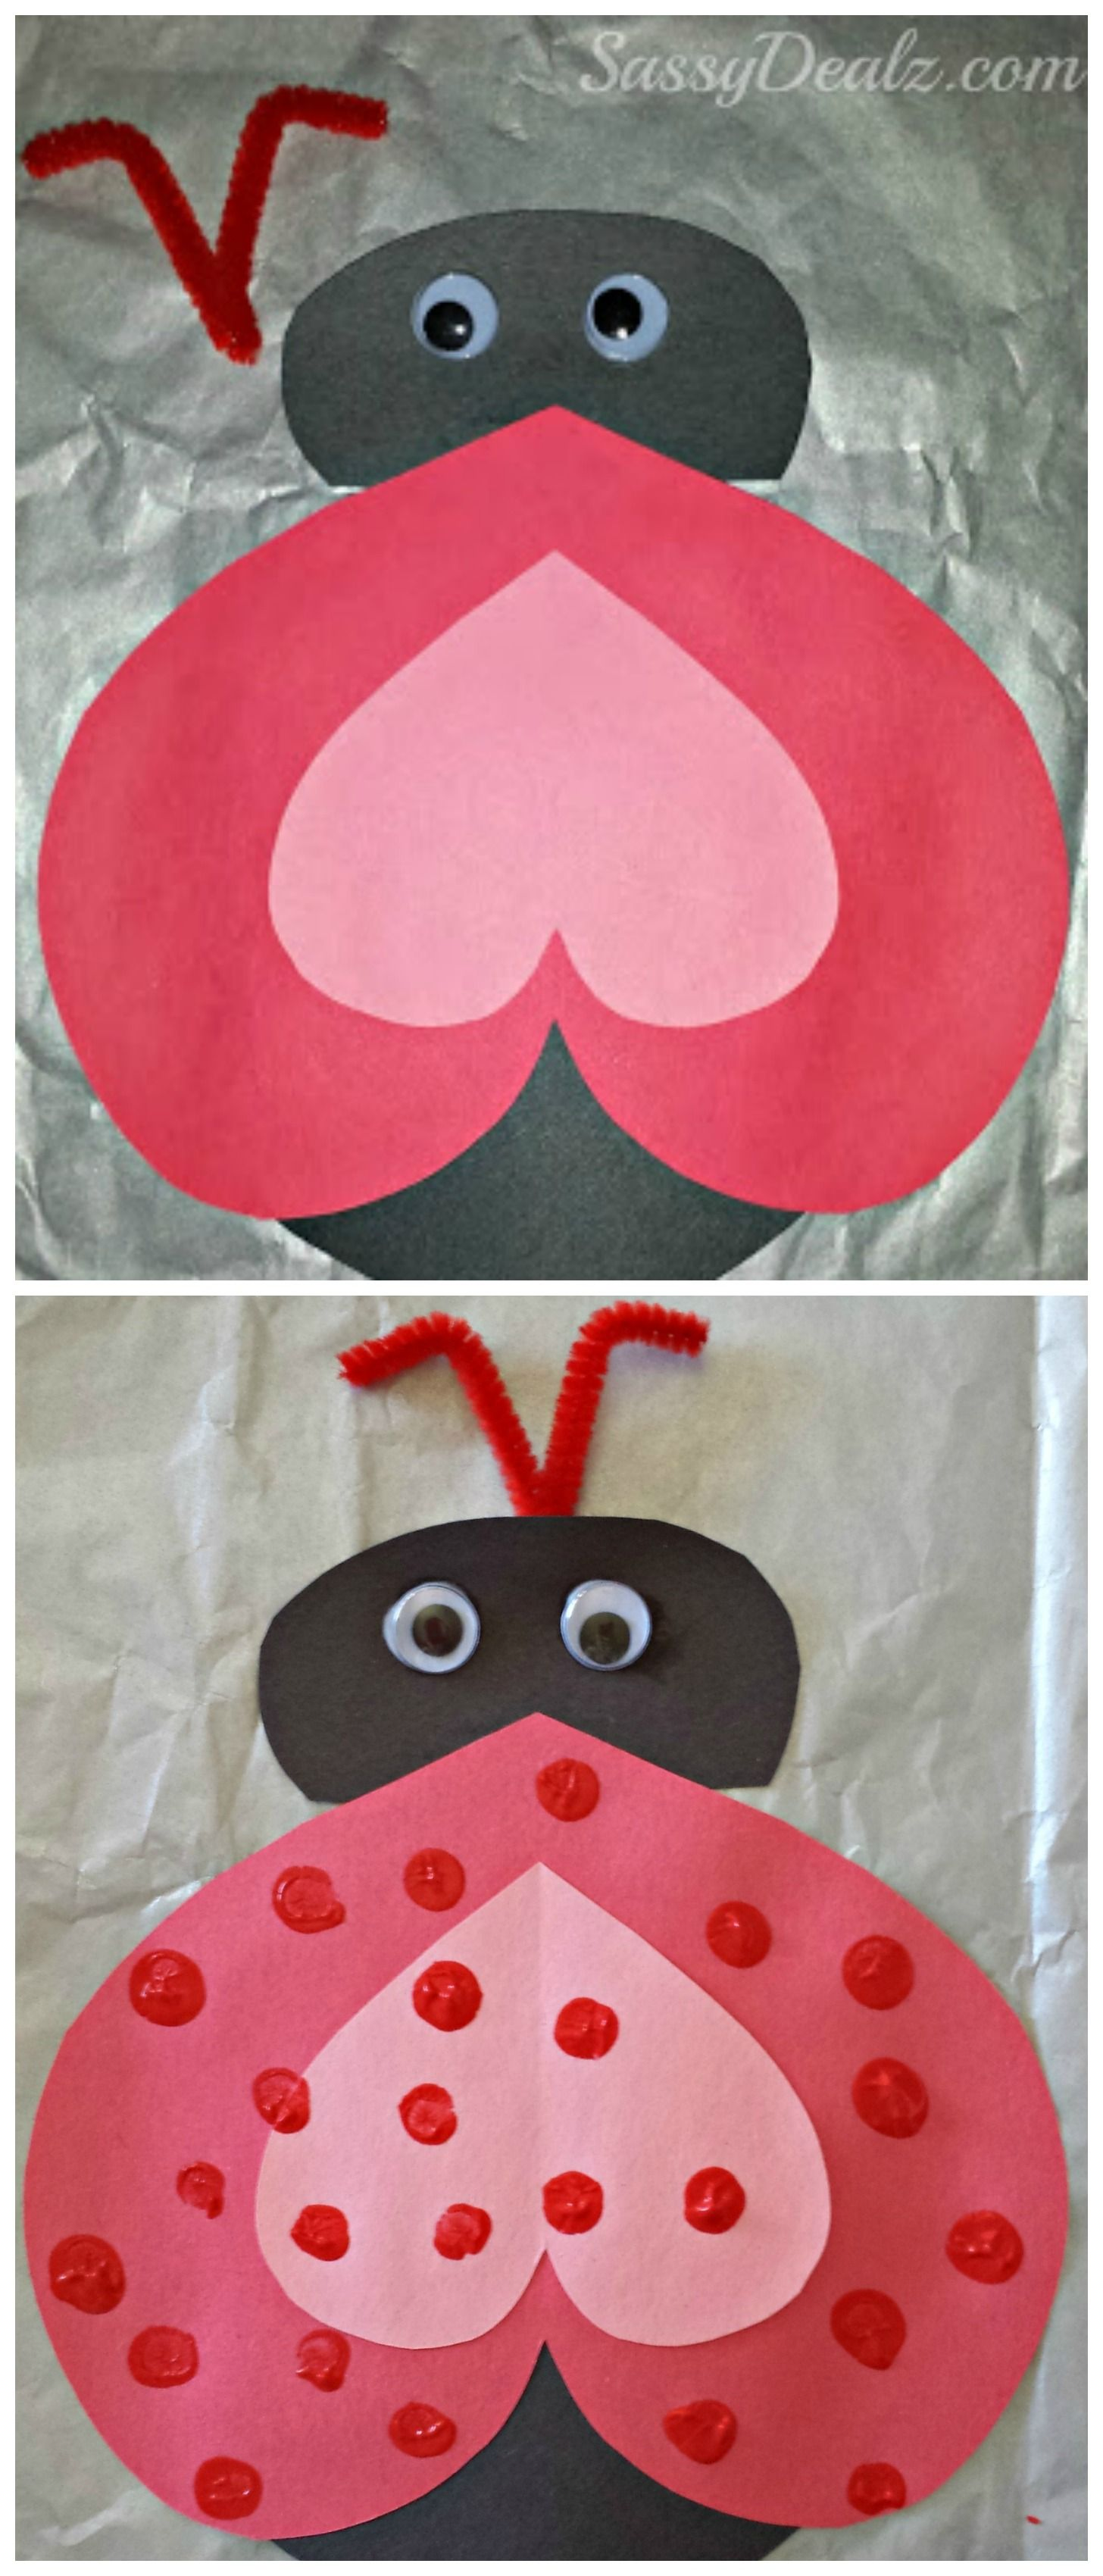 Heart Ladybug Valentines Day Craft For Kids – Valentine Card for Preschoolers